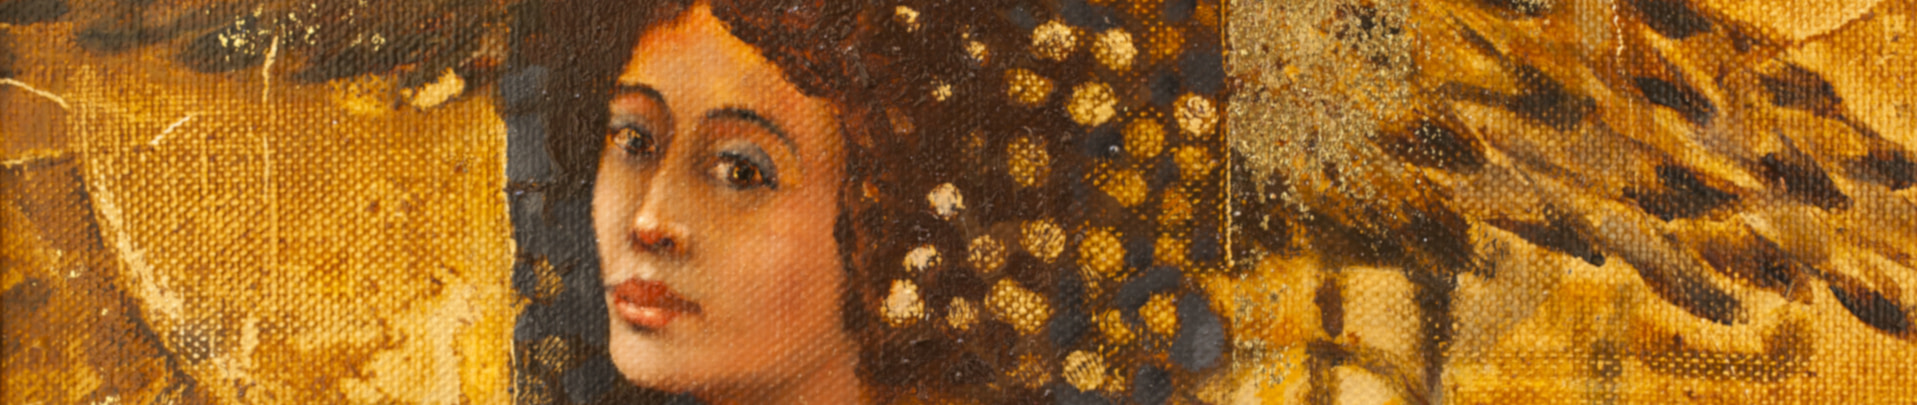 Klimt style wall art canvas and paper prints